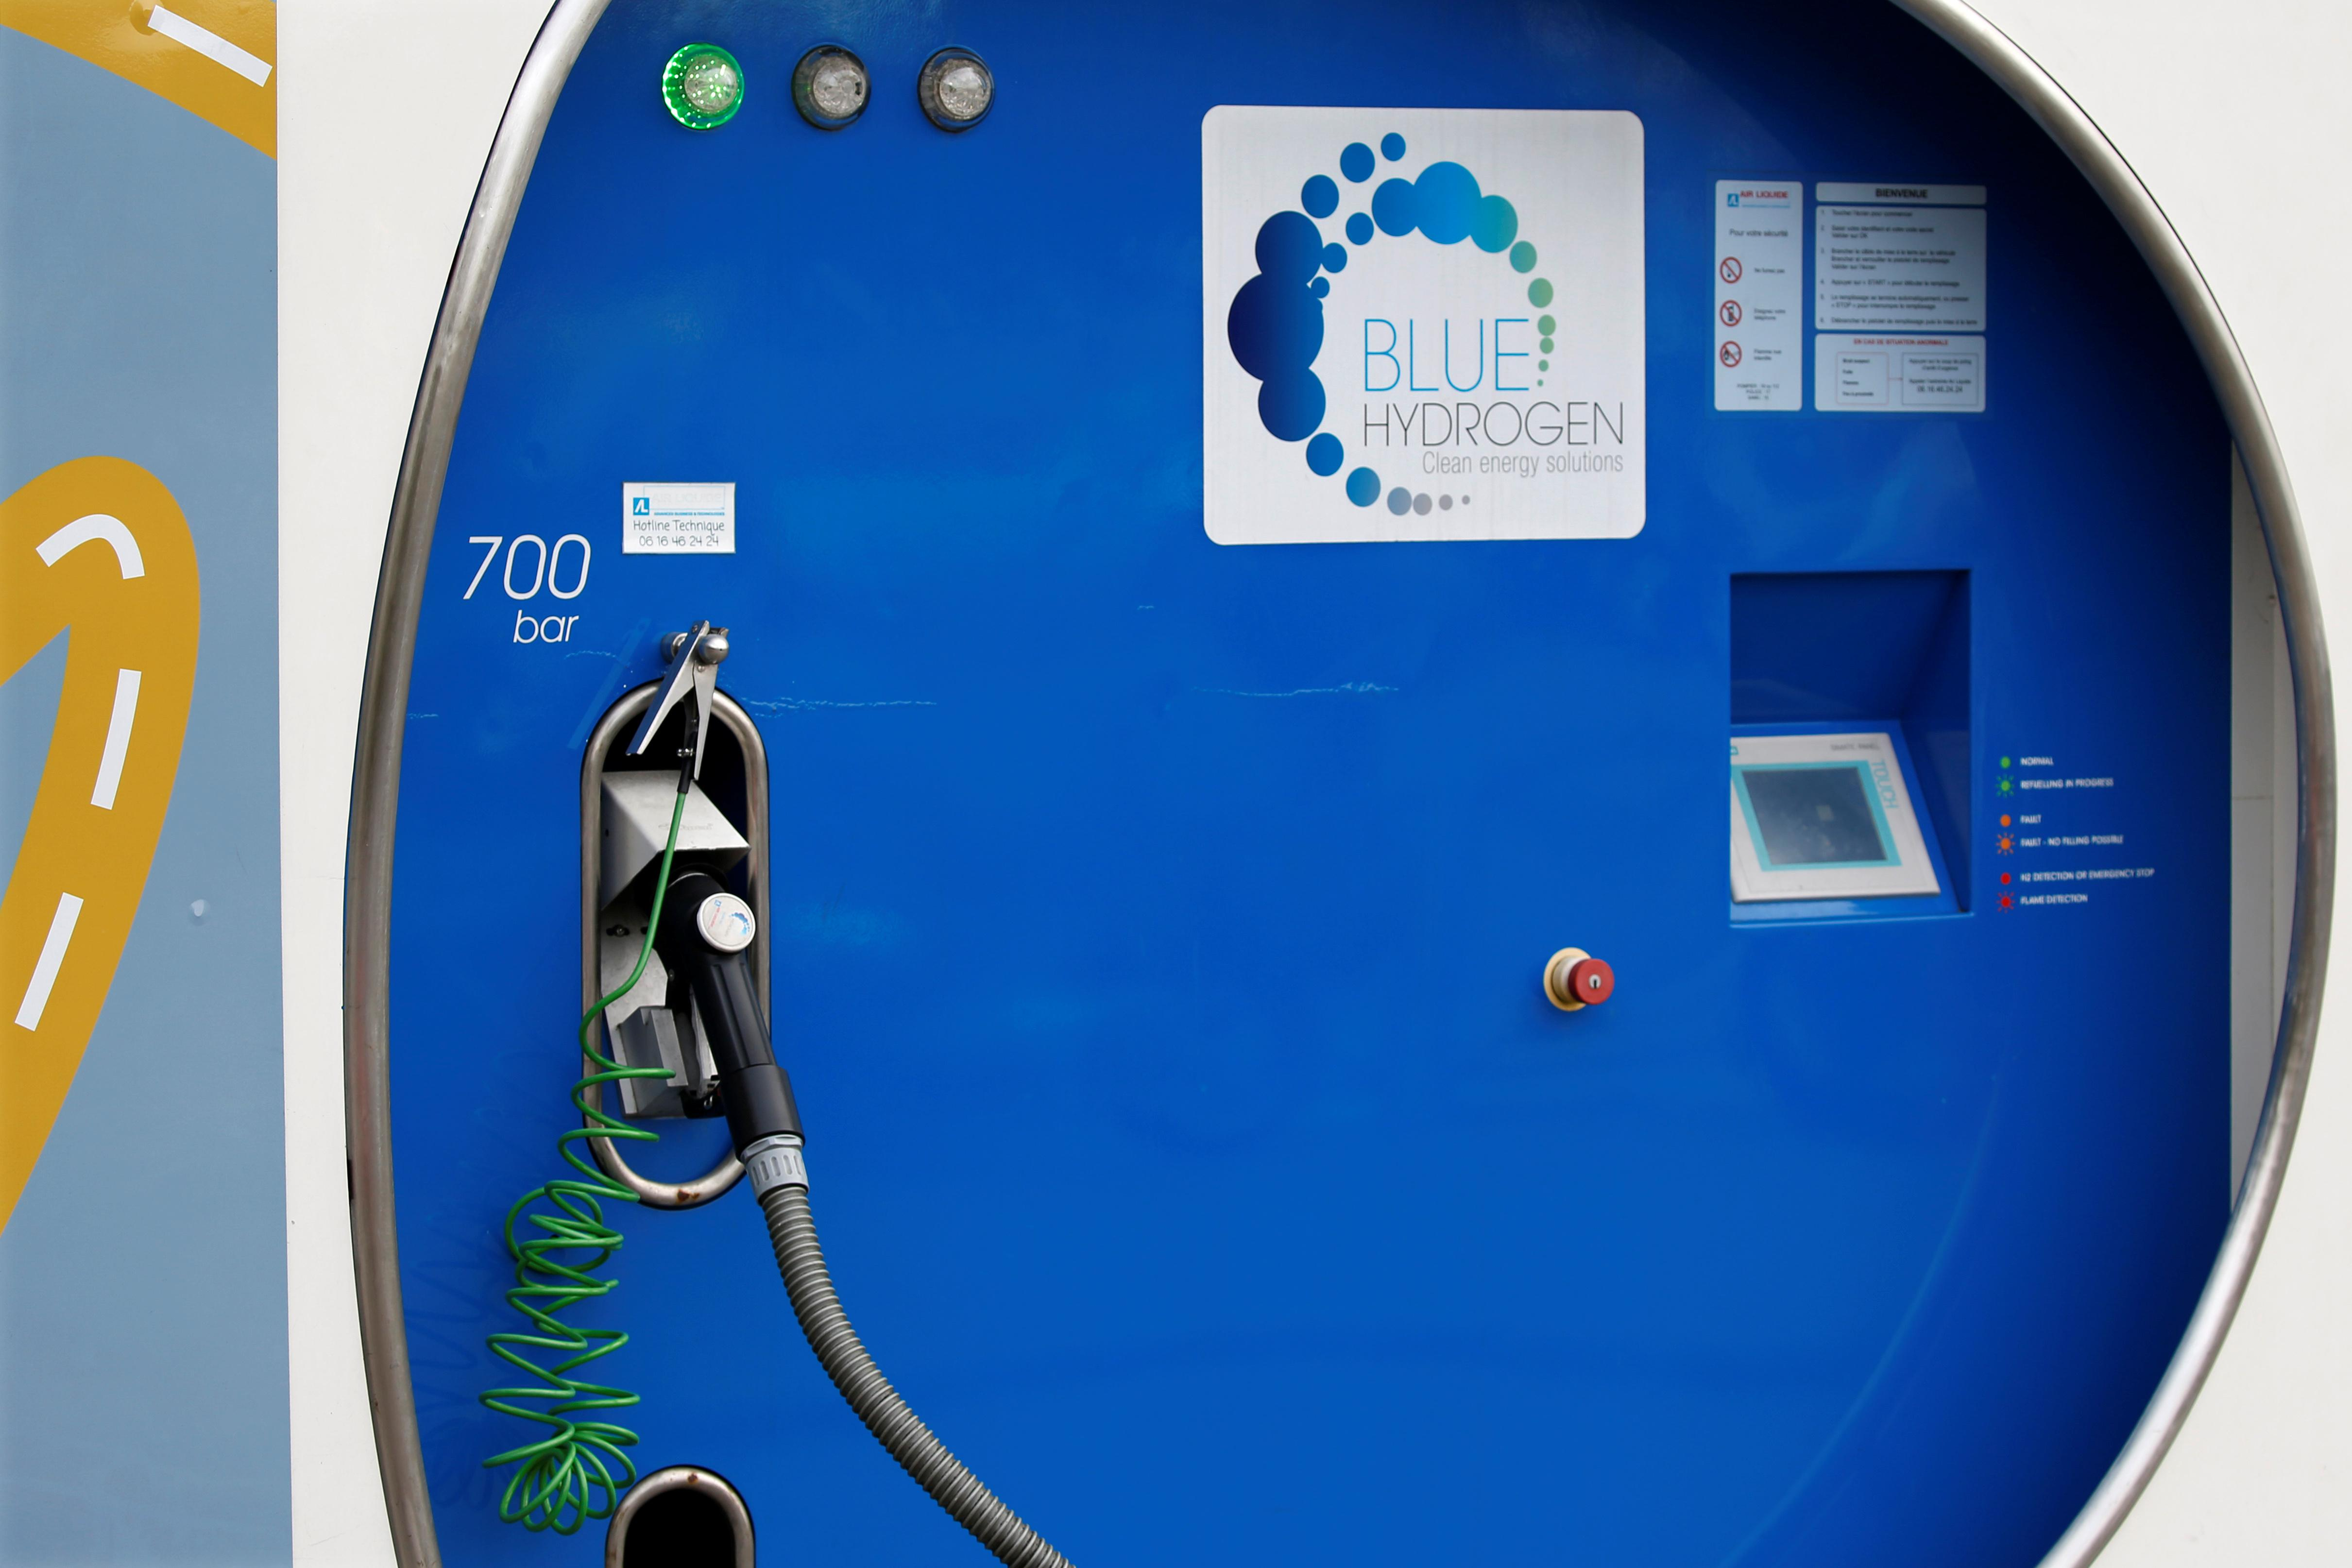 Explainer: Why Asia's biggest economies are backing hydrogen fuel...